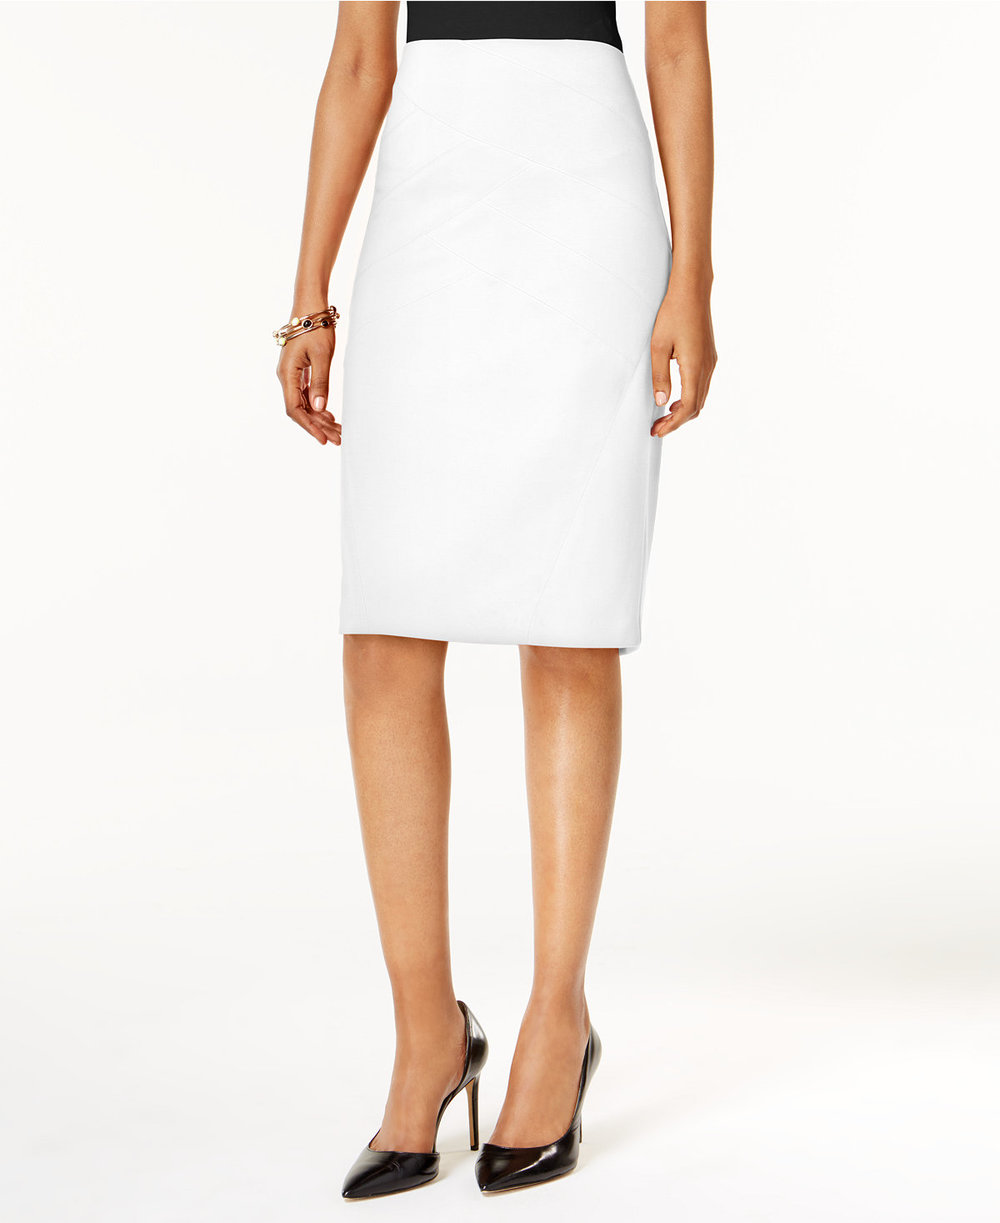 ivory pencil skirt.jpeg